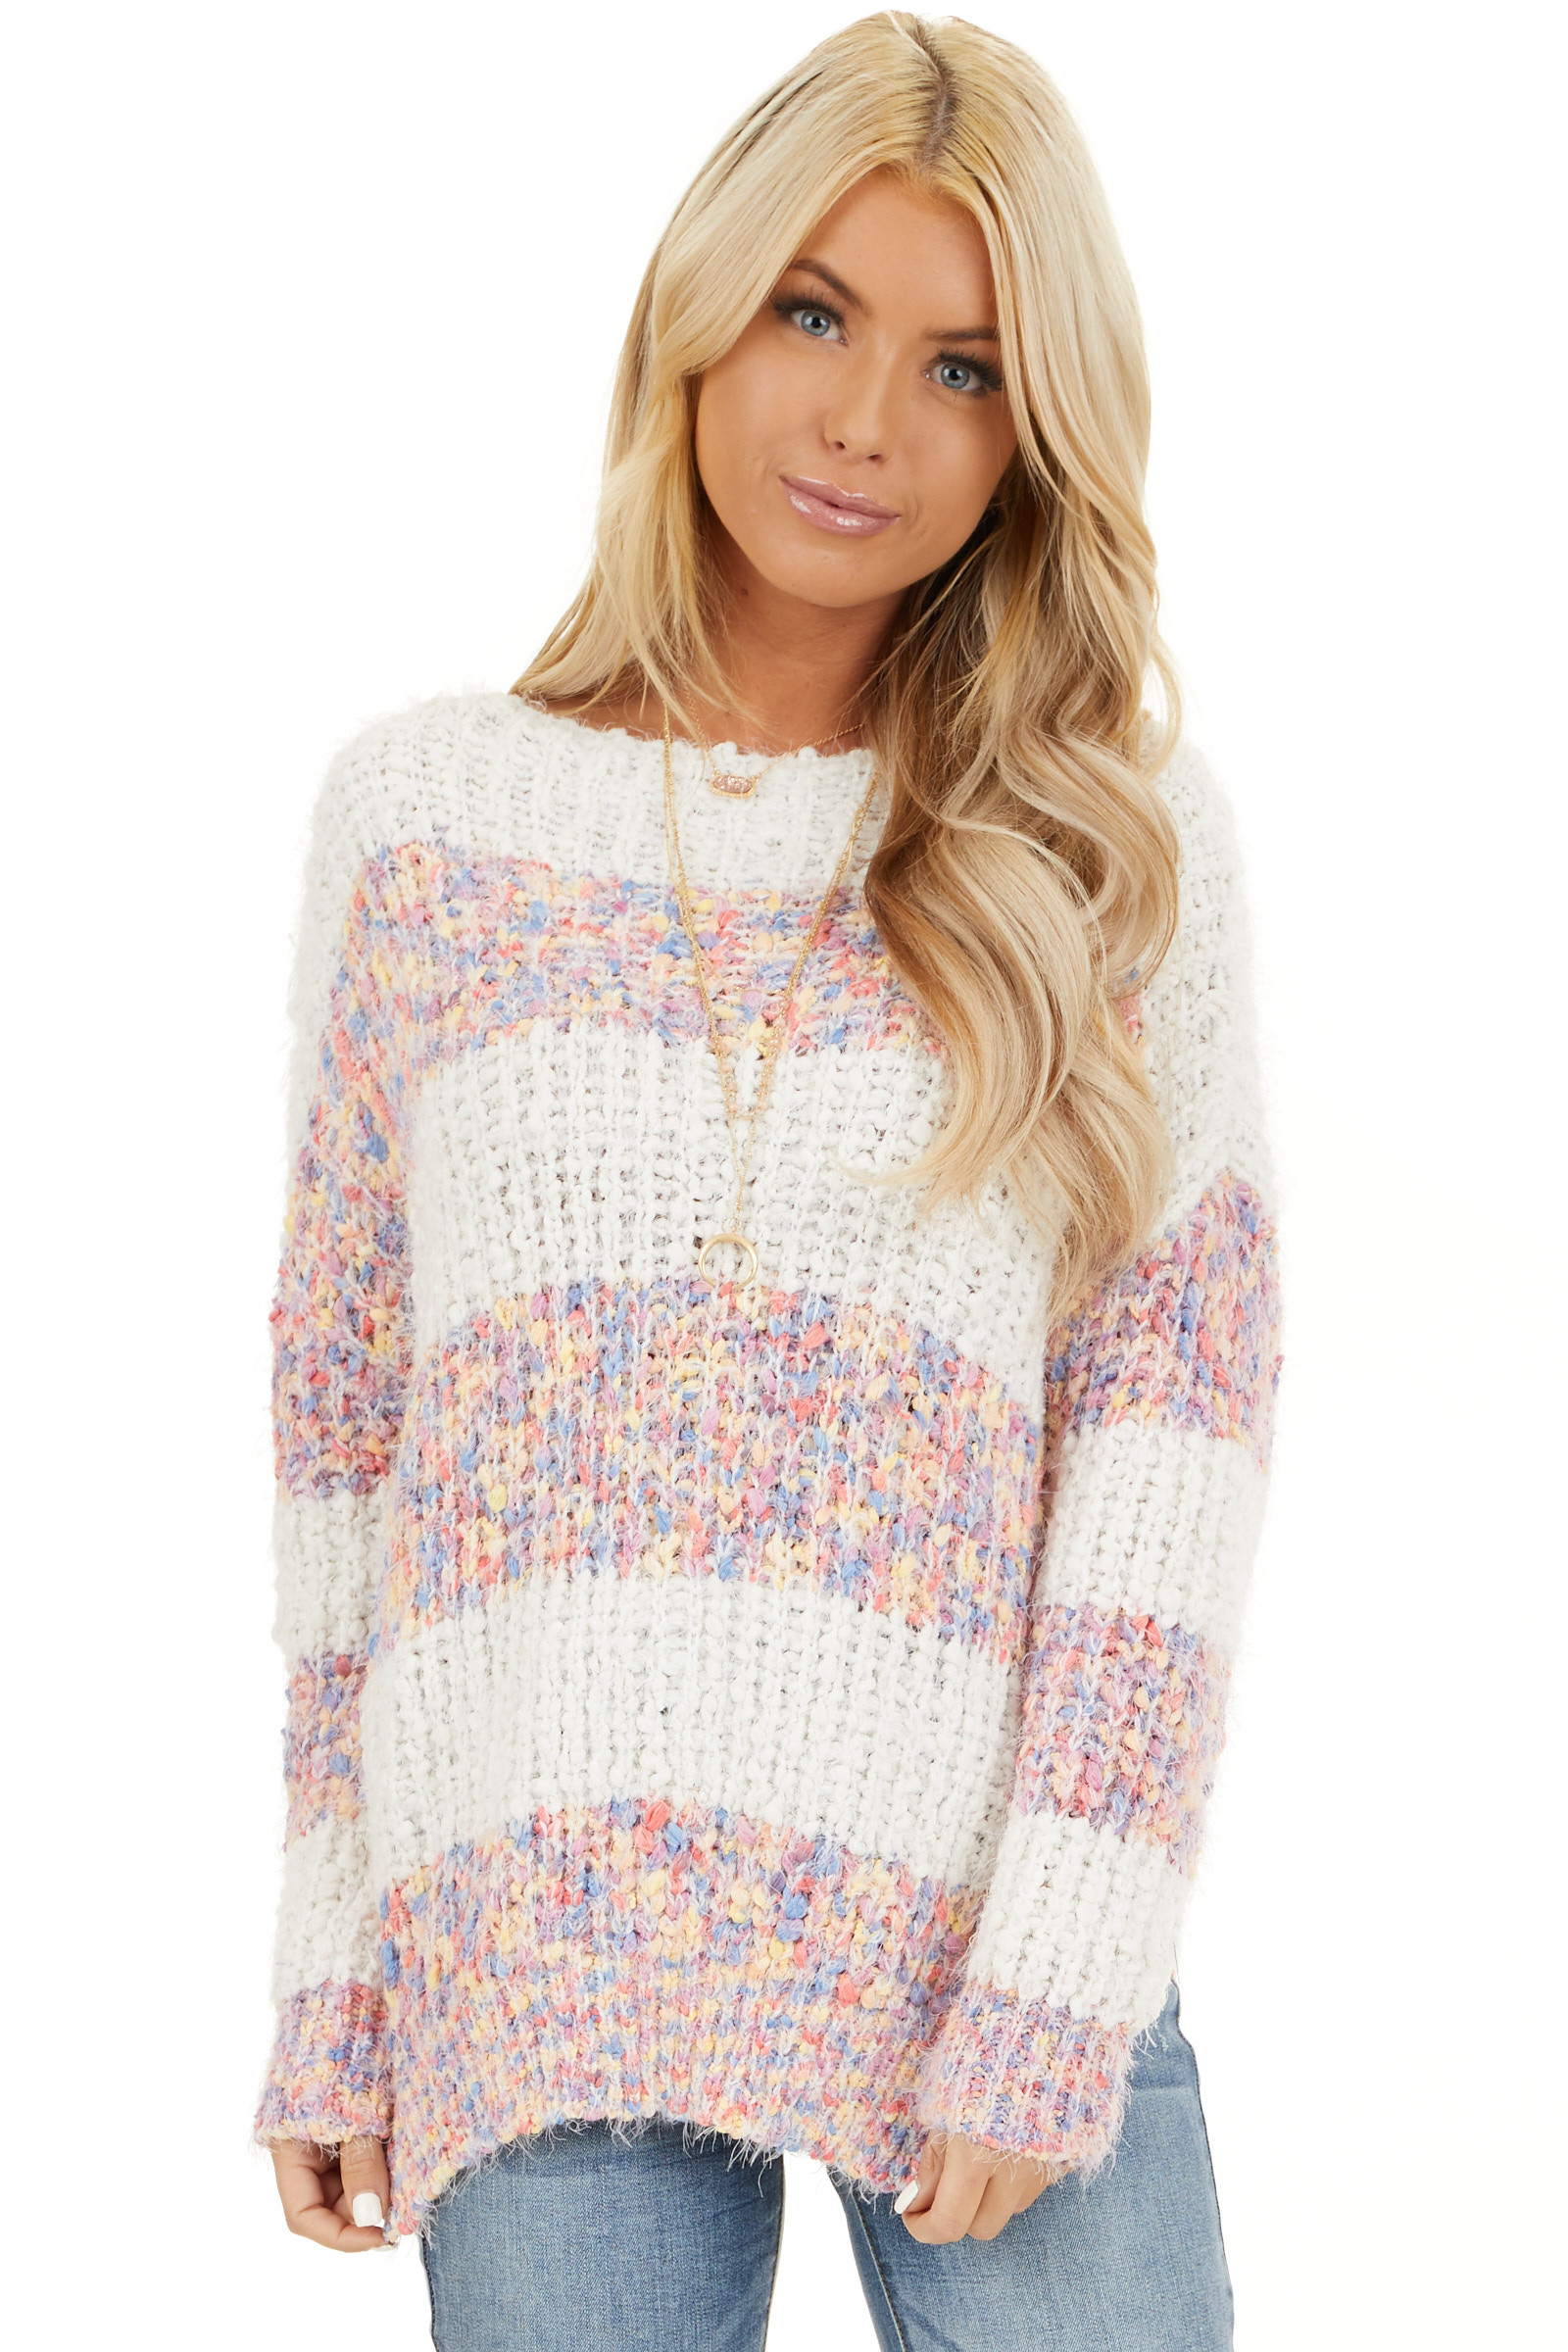 Ivory Popcorn Knit Long Sleeve Sweater with Speckled Stripes closeup